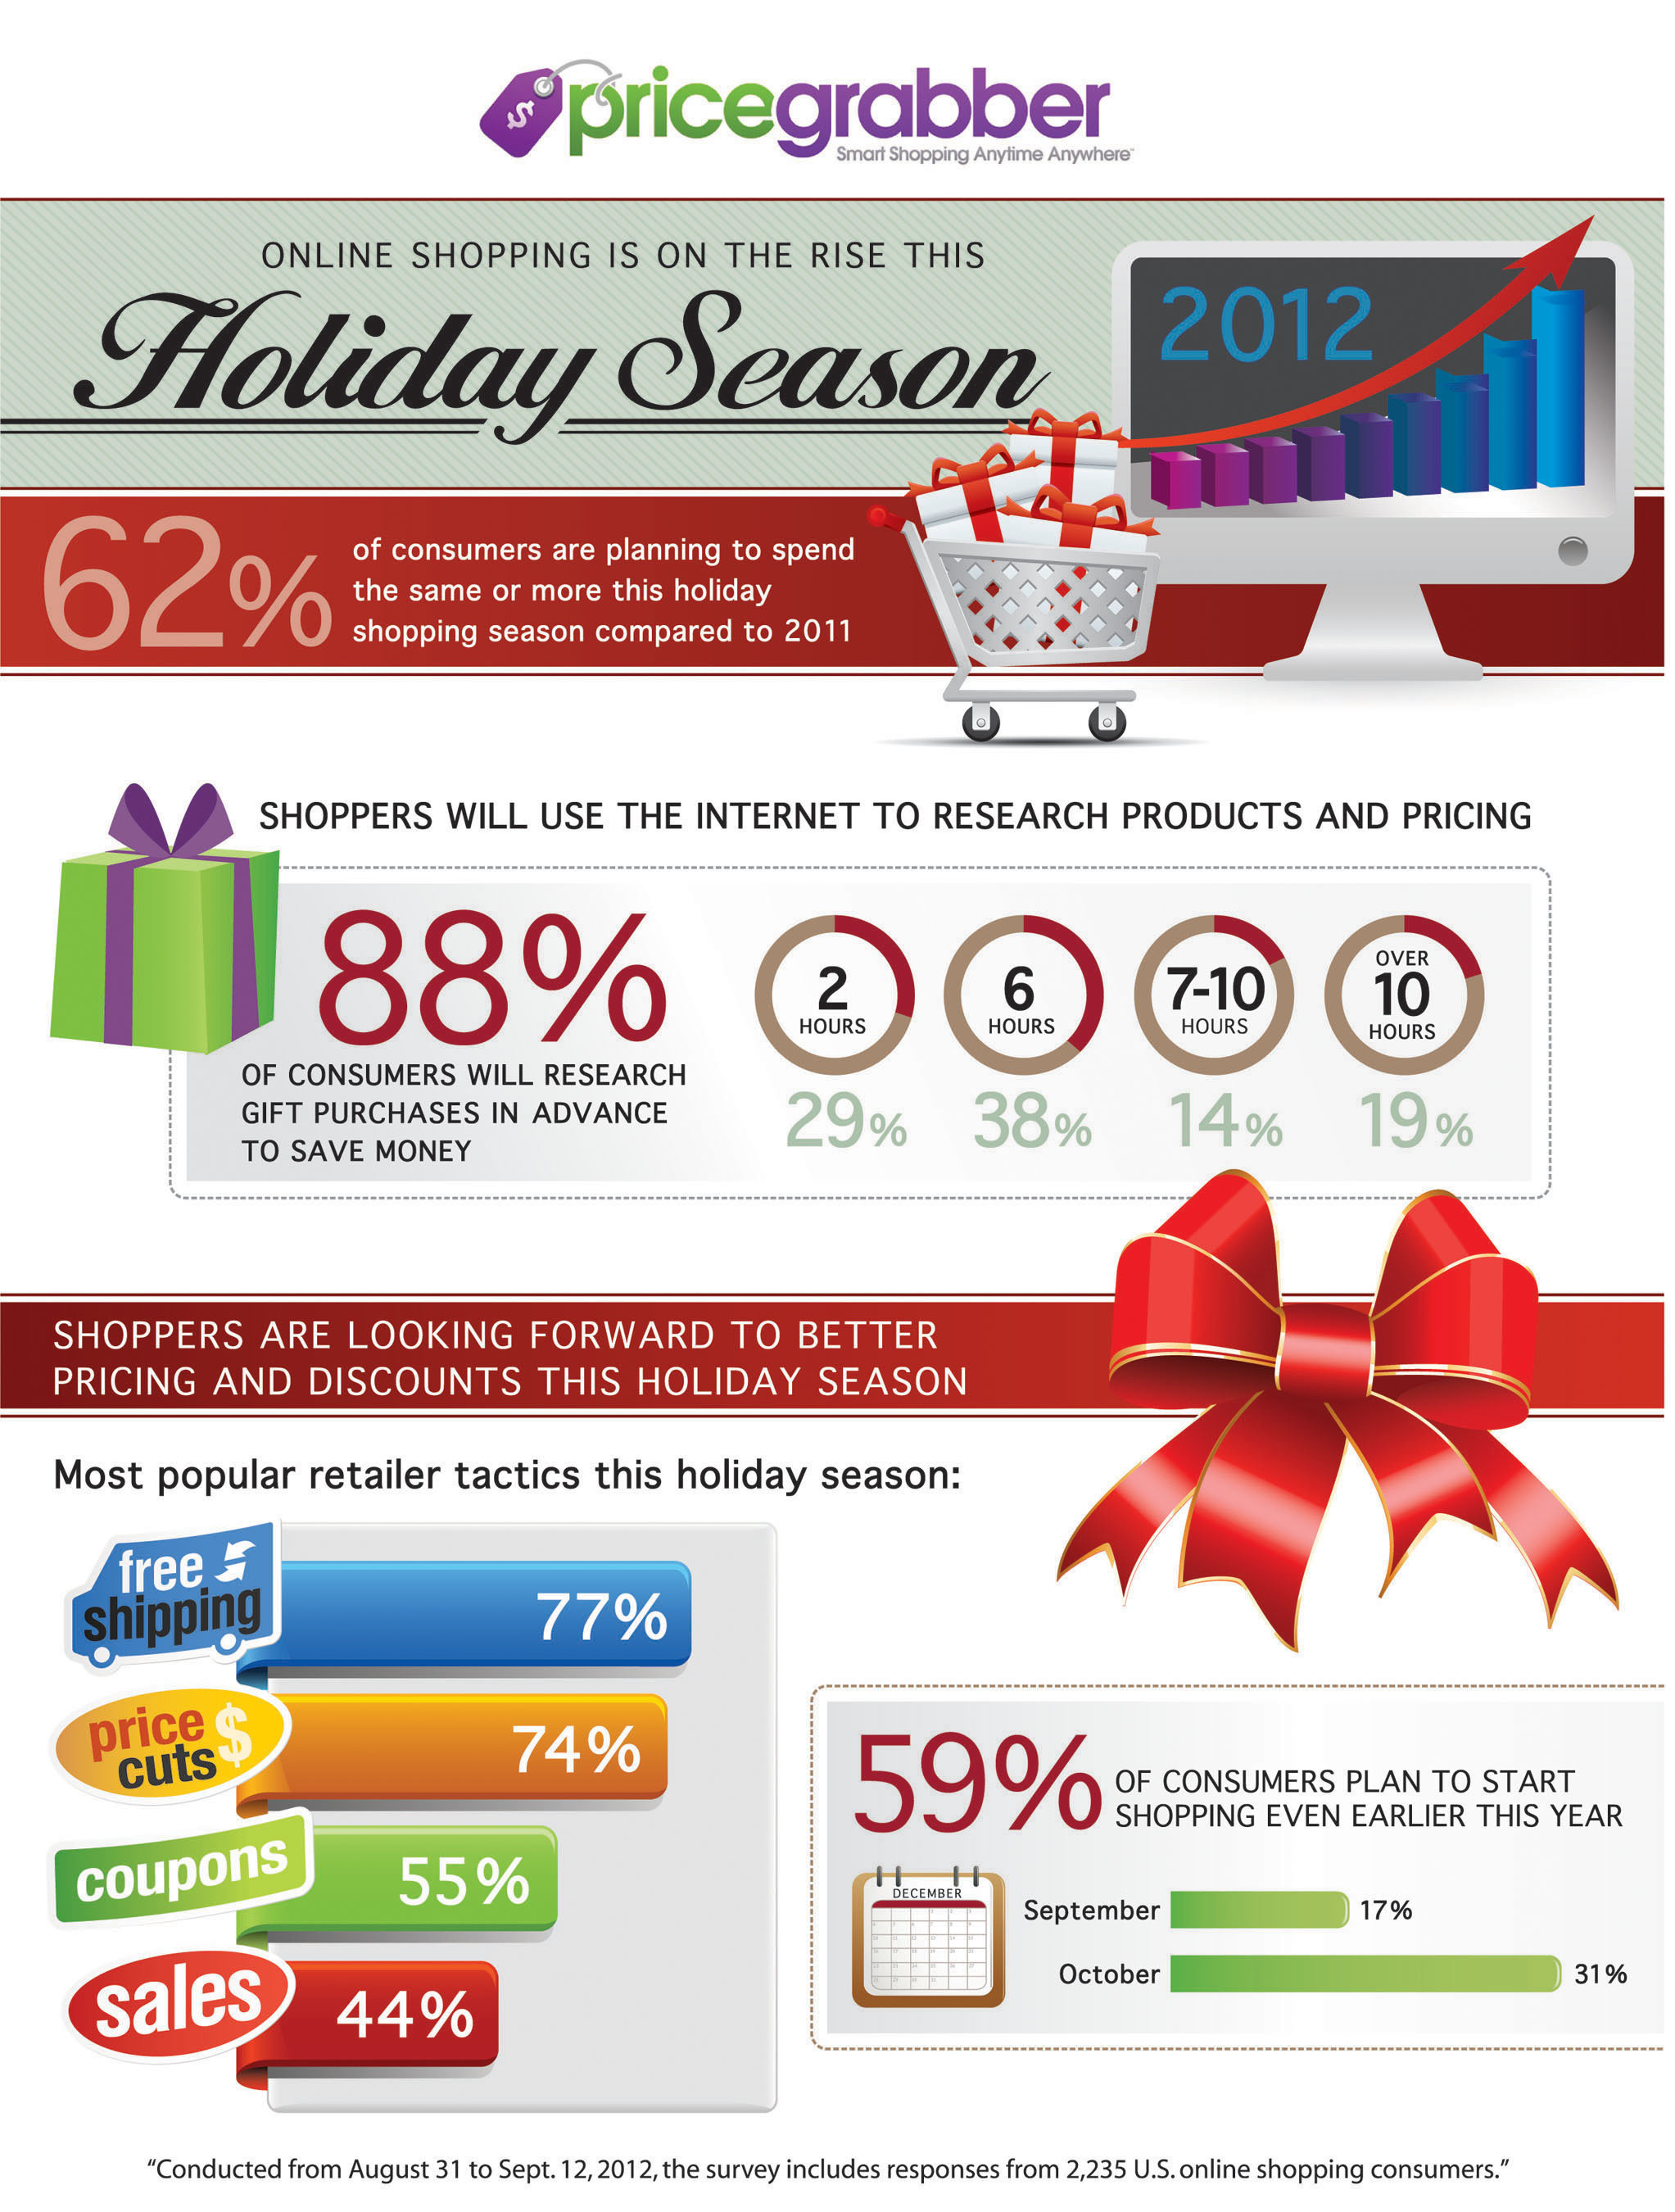 Sixty-two percent of consumers are planning to spend the same or more this holiday shopping season